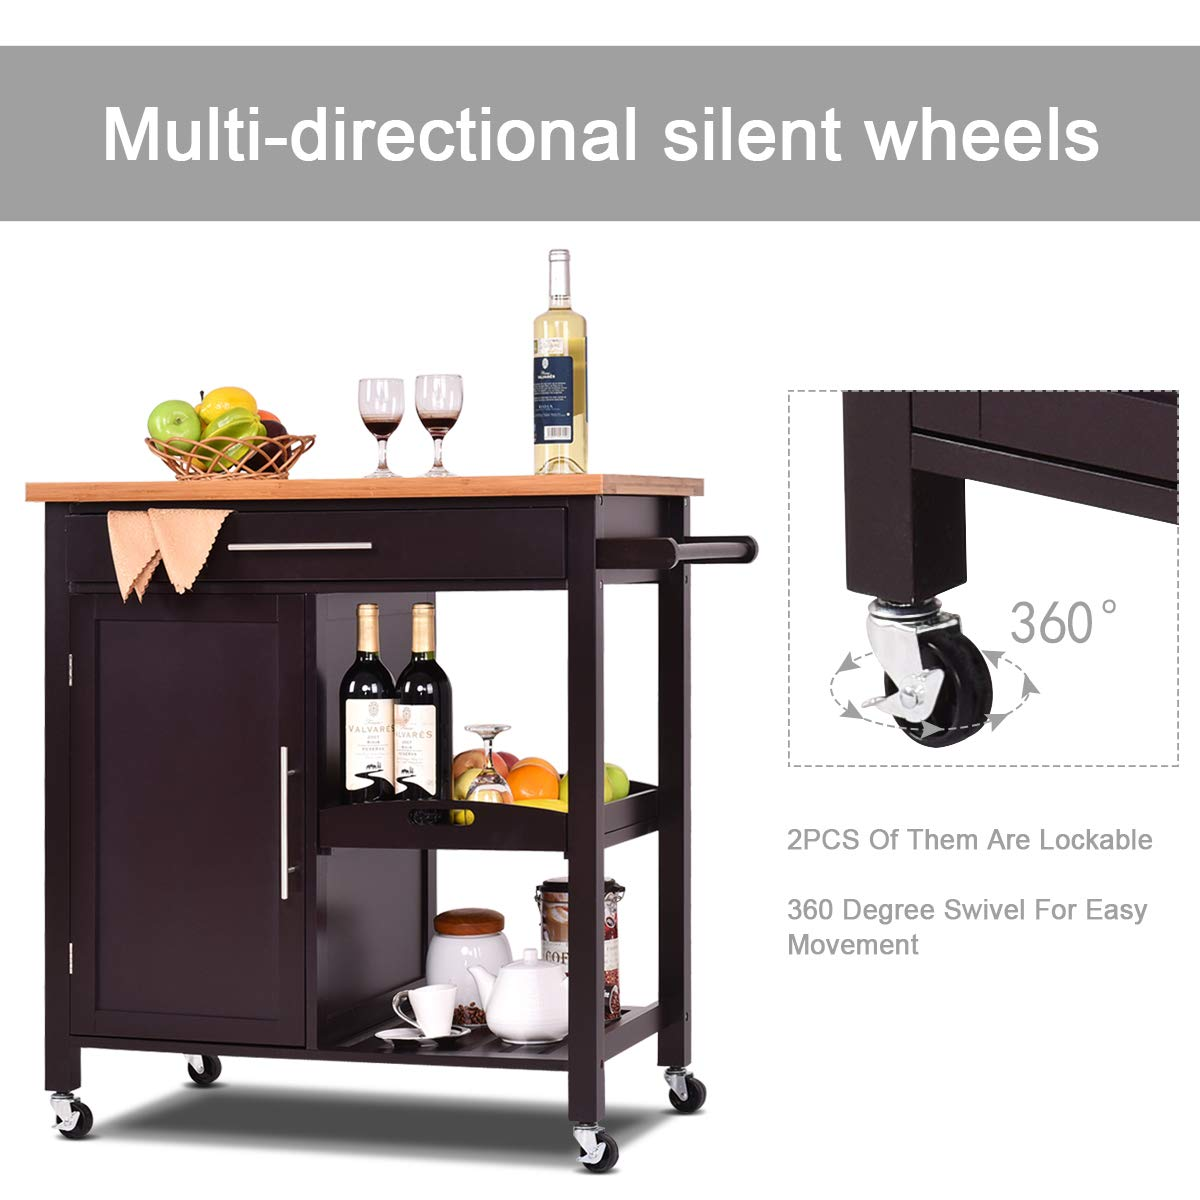 Giantex Kitchen Trolley Cart Wood Rolling Island Cart Home Restaurant Kitchen Dining Room Serving Utility Cart w/Bamboo Top Storage Cabinet Bigger Drawer Removable Tray Shelf, Brown by Giantex (Image #4)